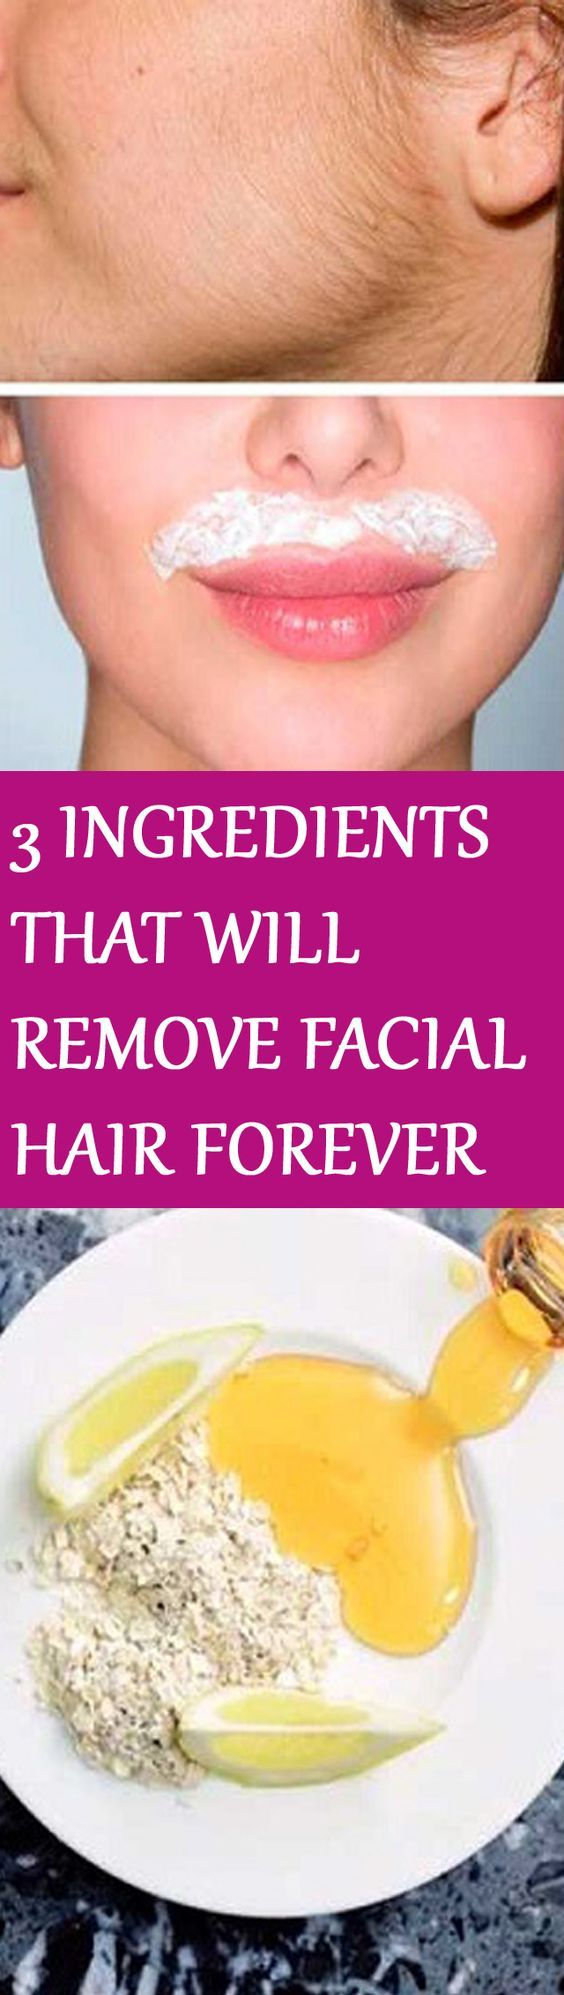 IN JUST 15 MINUTES THESE 3 INGREDIENTS WILL REMOVE FACIAL HAIR FOREVER For instructions click the image :D